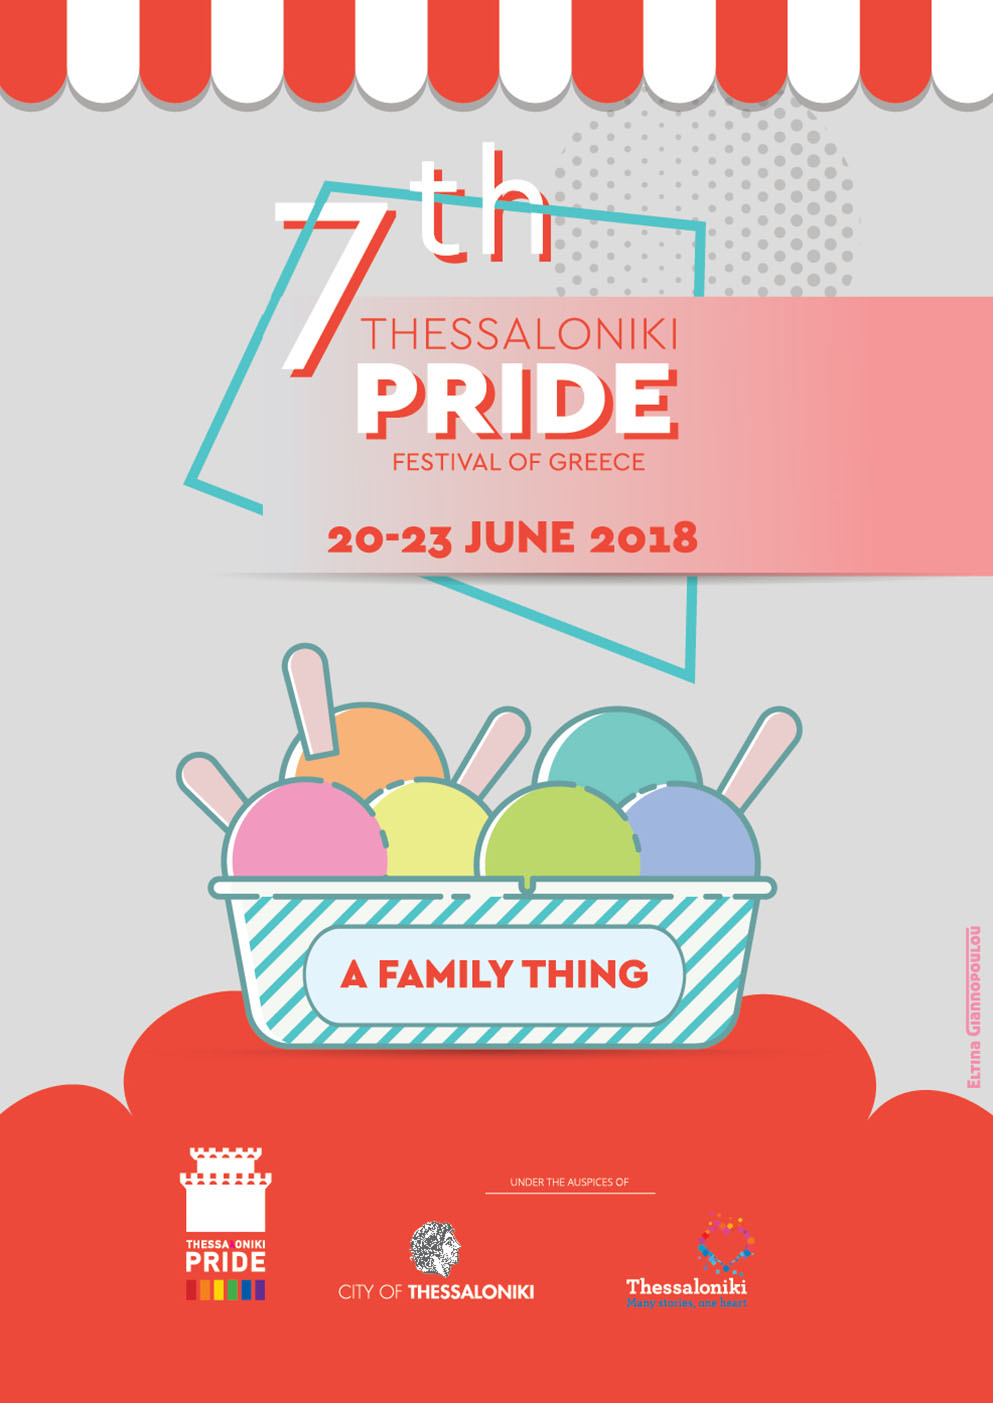 """7th thessaloniki Pride poster """"A Family Thing"""""""